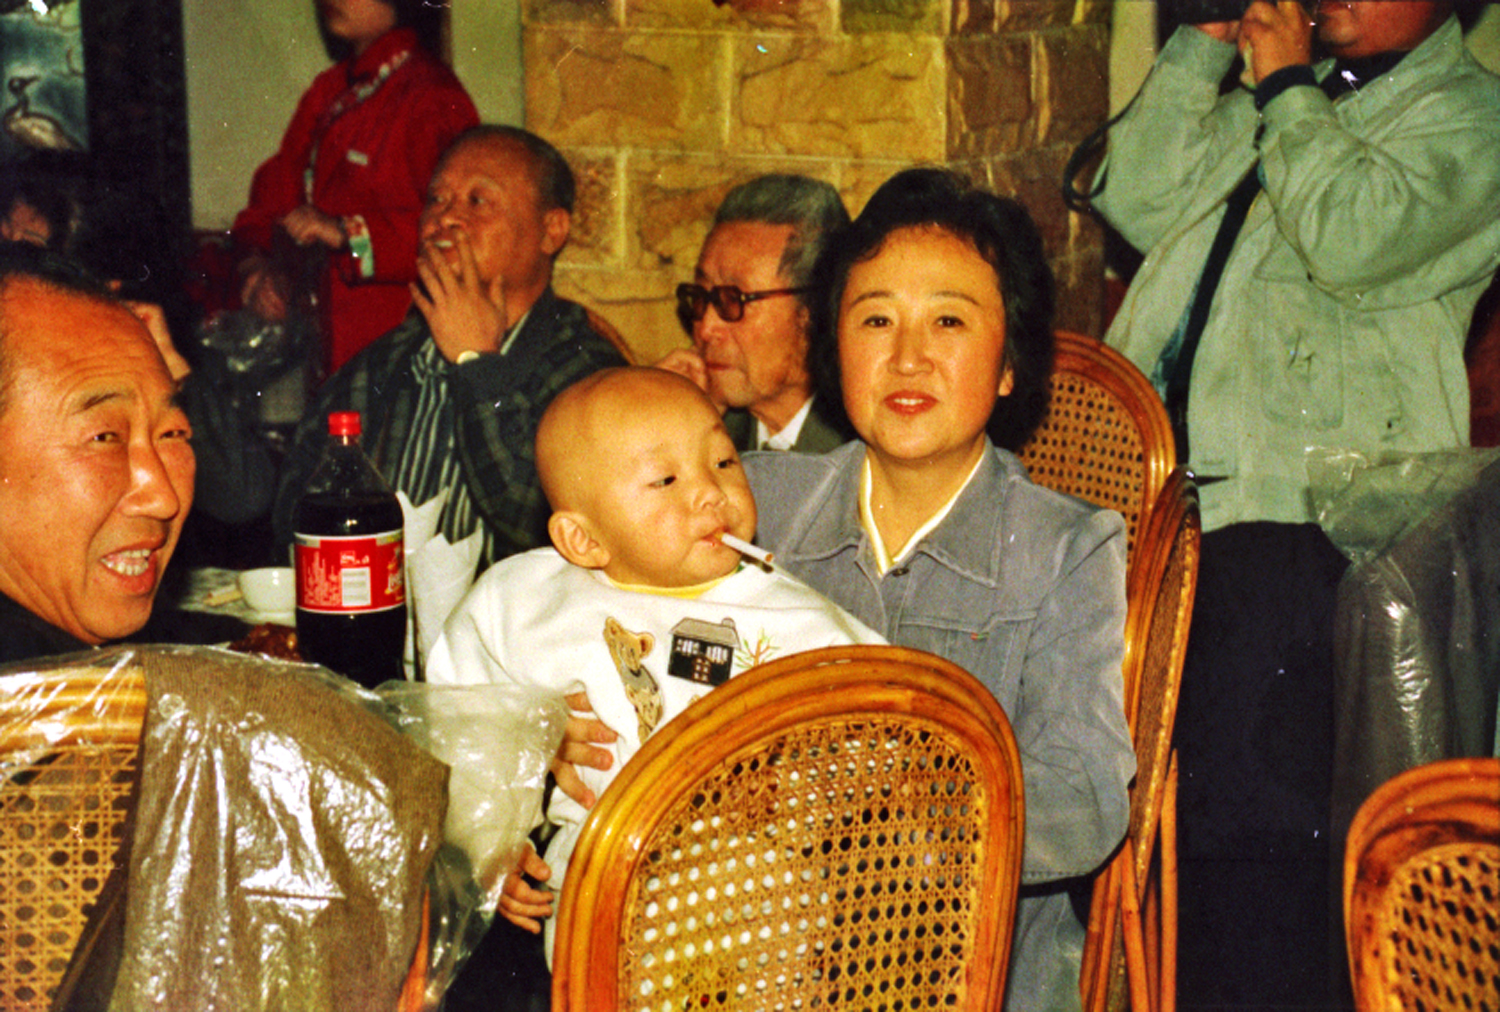 thomas-sauvin-beijing-silvermine-until-death-do-us-part-photography-of-china-6.jpg